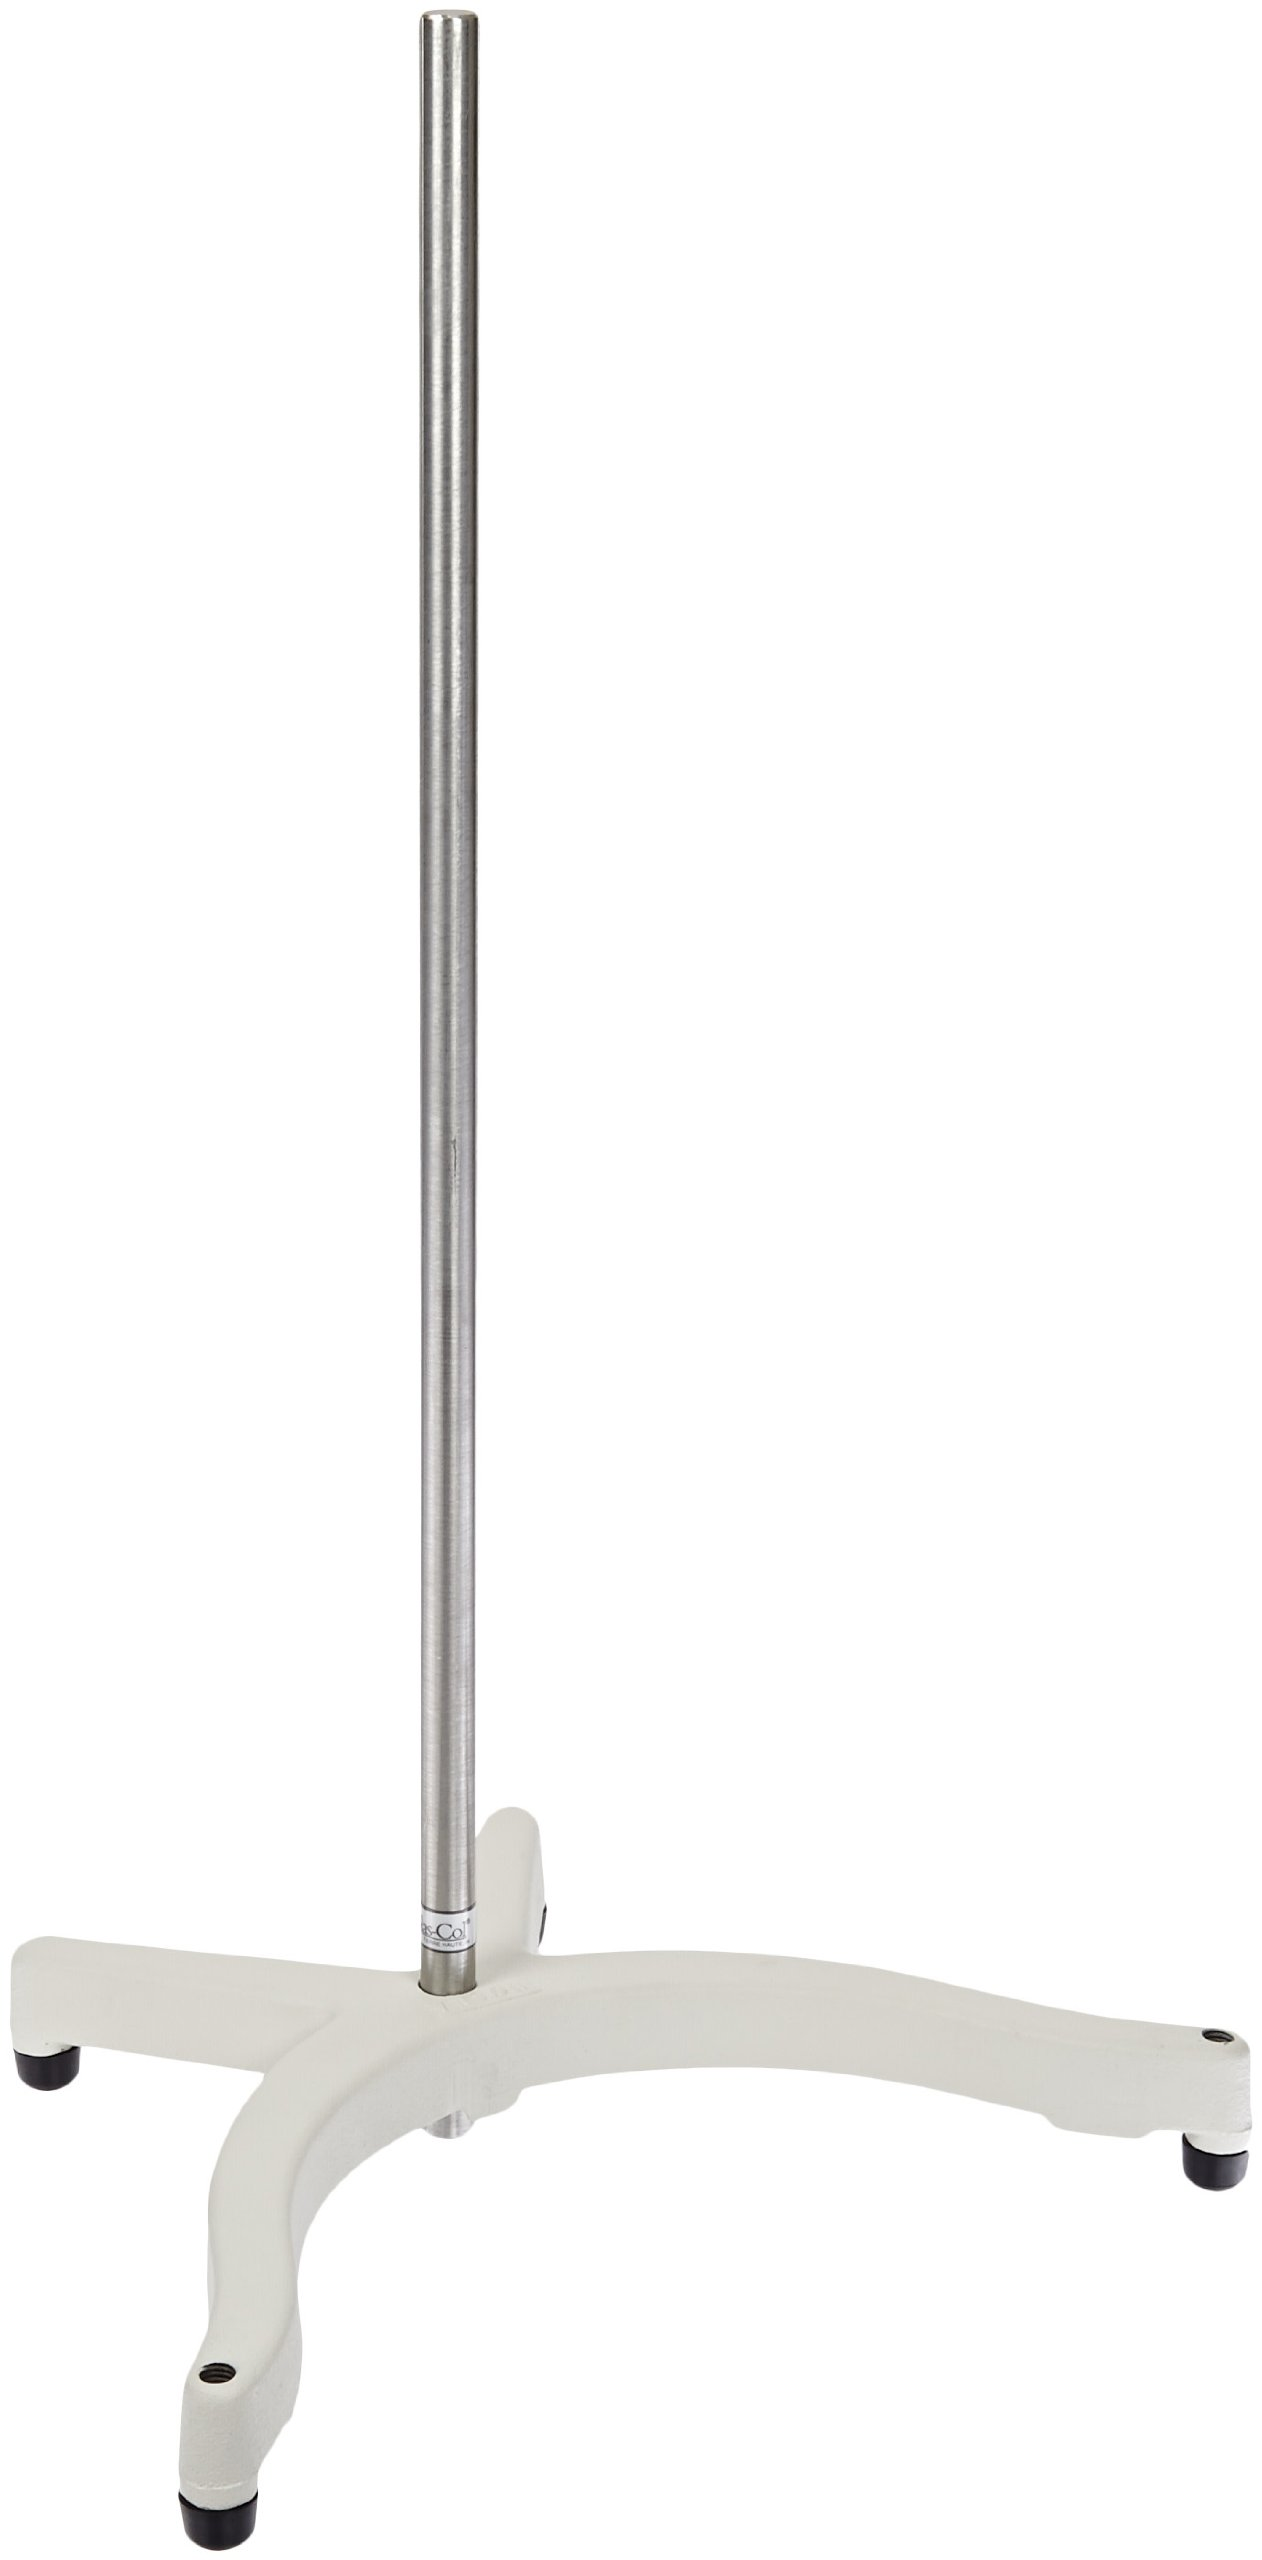 Glas-Col 099D A130150 Heavy-duty Lab Stand for Stirrers, 19mm Shaft Diameter, 762mm Shaft Length by Glas-Col